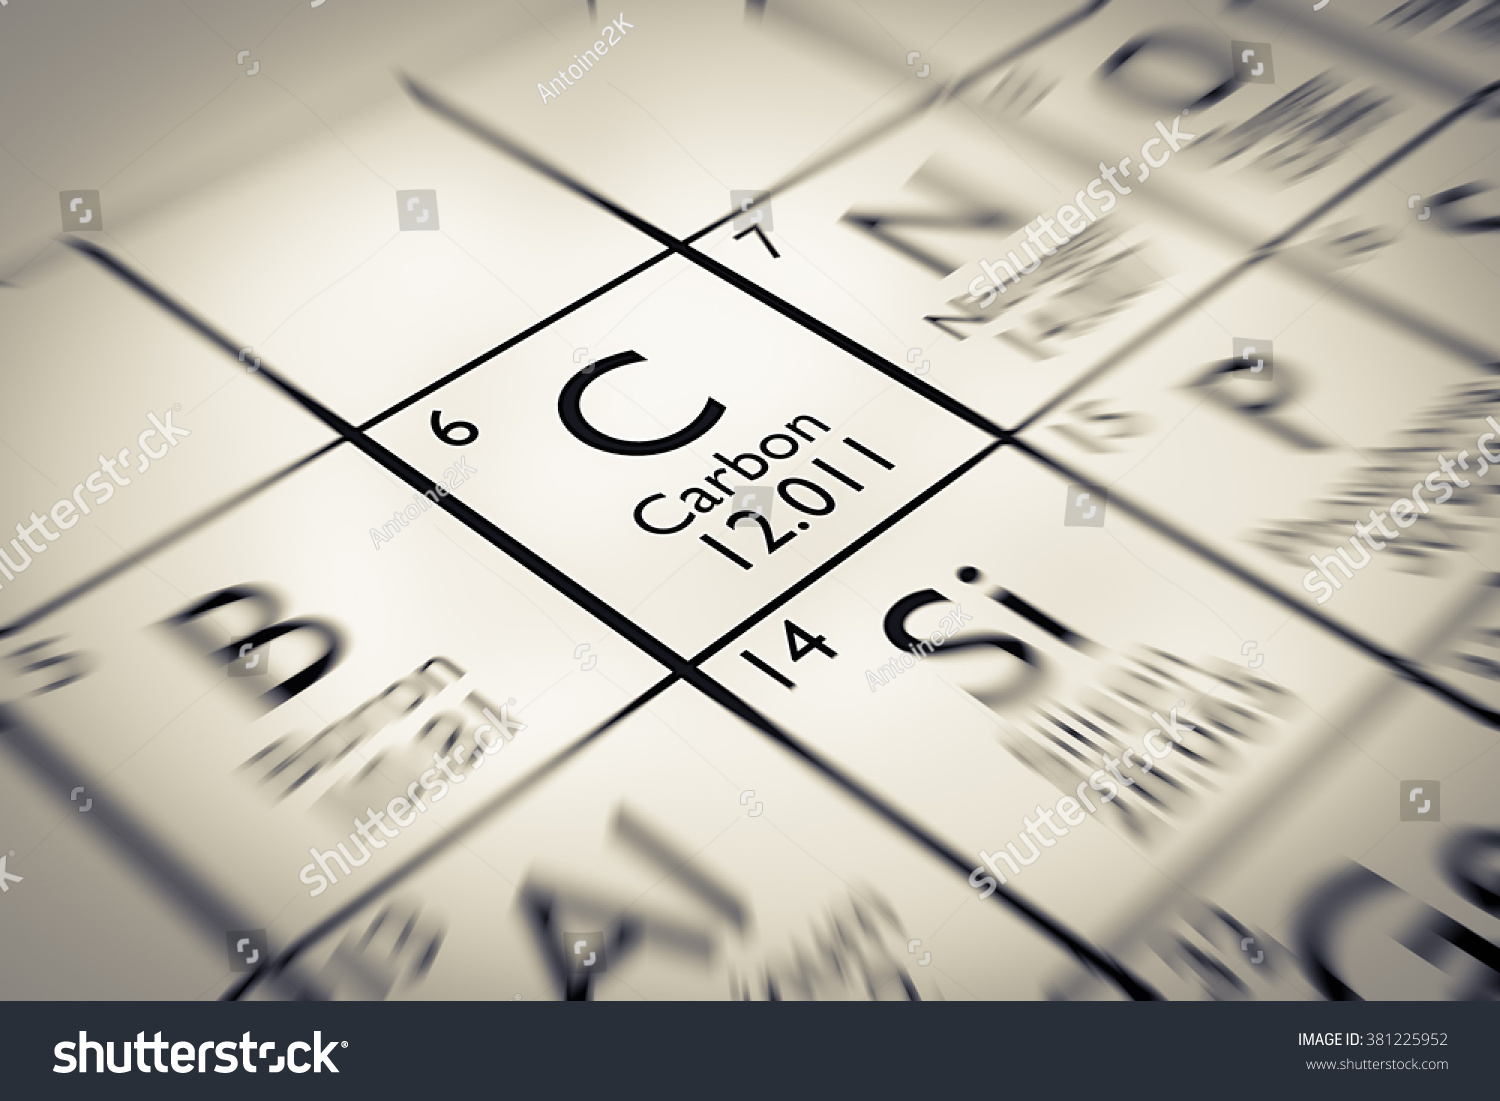 What is the symbol for carbon on the periodic table gallery carbon chemical element symbol periodic dimmer switch wiring focus on carbon chemical element mendeleev stock illustration gamestrikefo Gallery